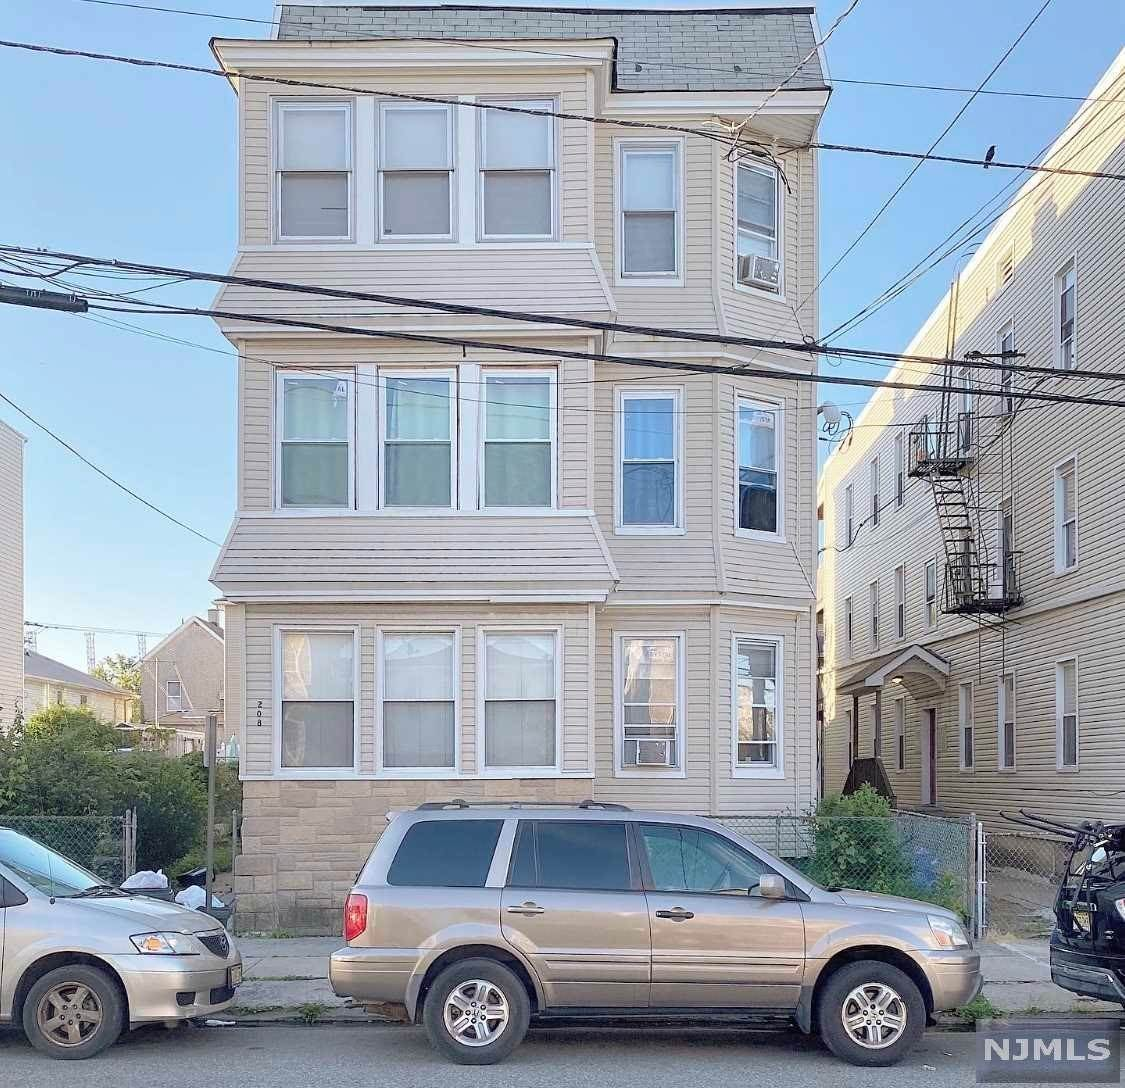 Commercial / Office for Sale at 208-210 Geneva Street Elizabeth, New Jersey,07206 United States